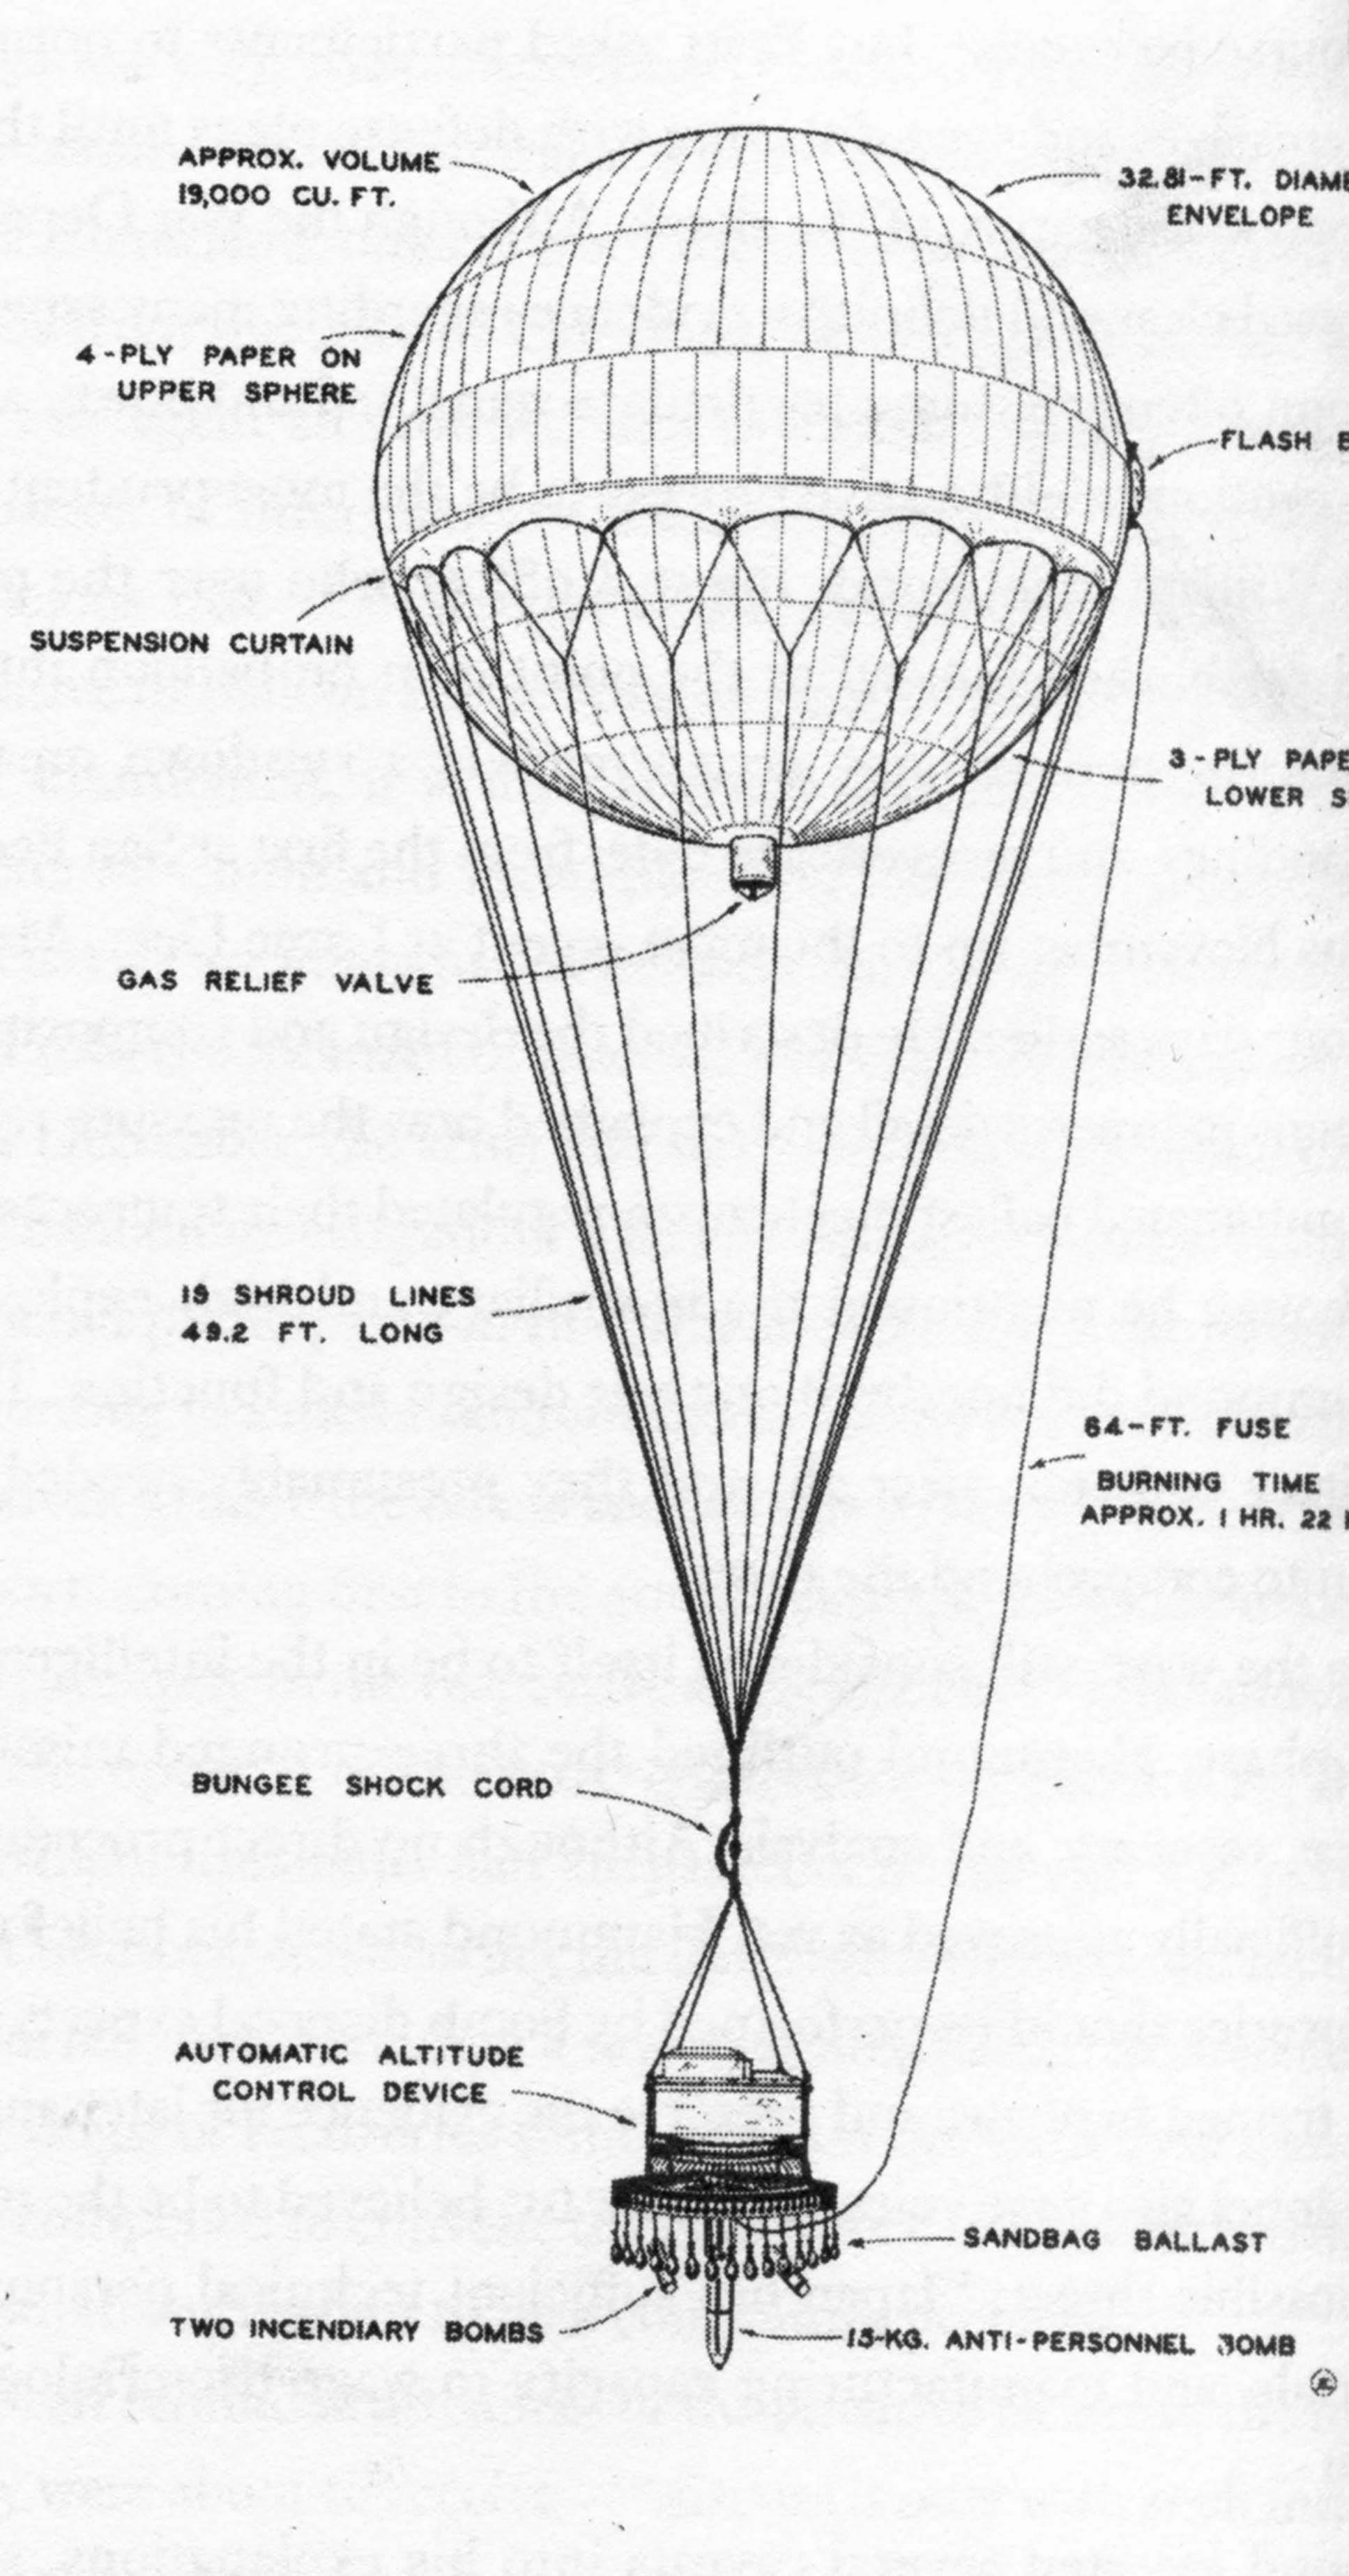 Schematic of the Japanese fire balloon.  The entire outfit measured 100 feet from the top of the balloon to the bottom of the gondola.